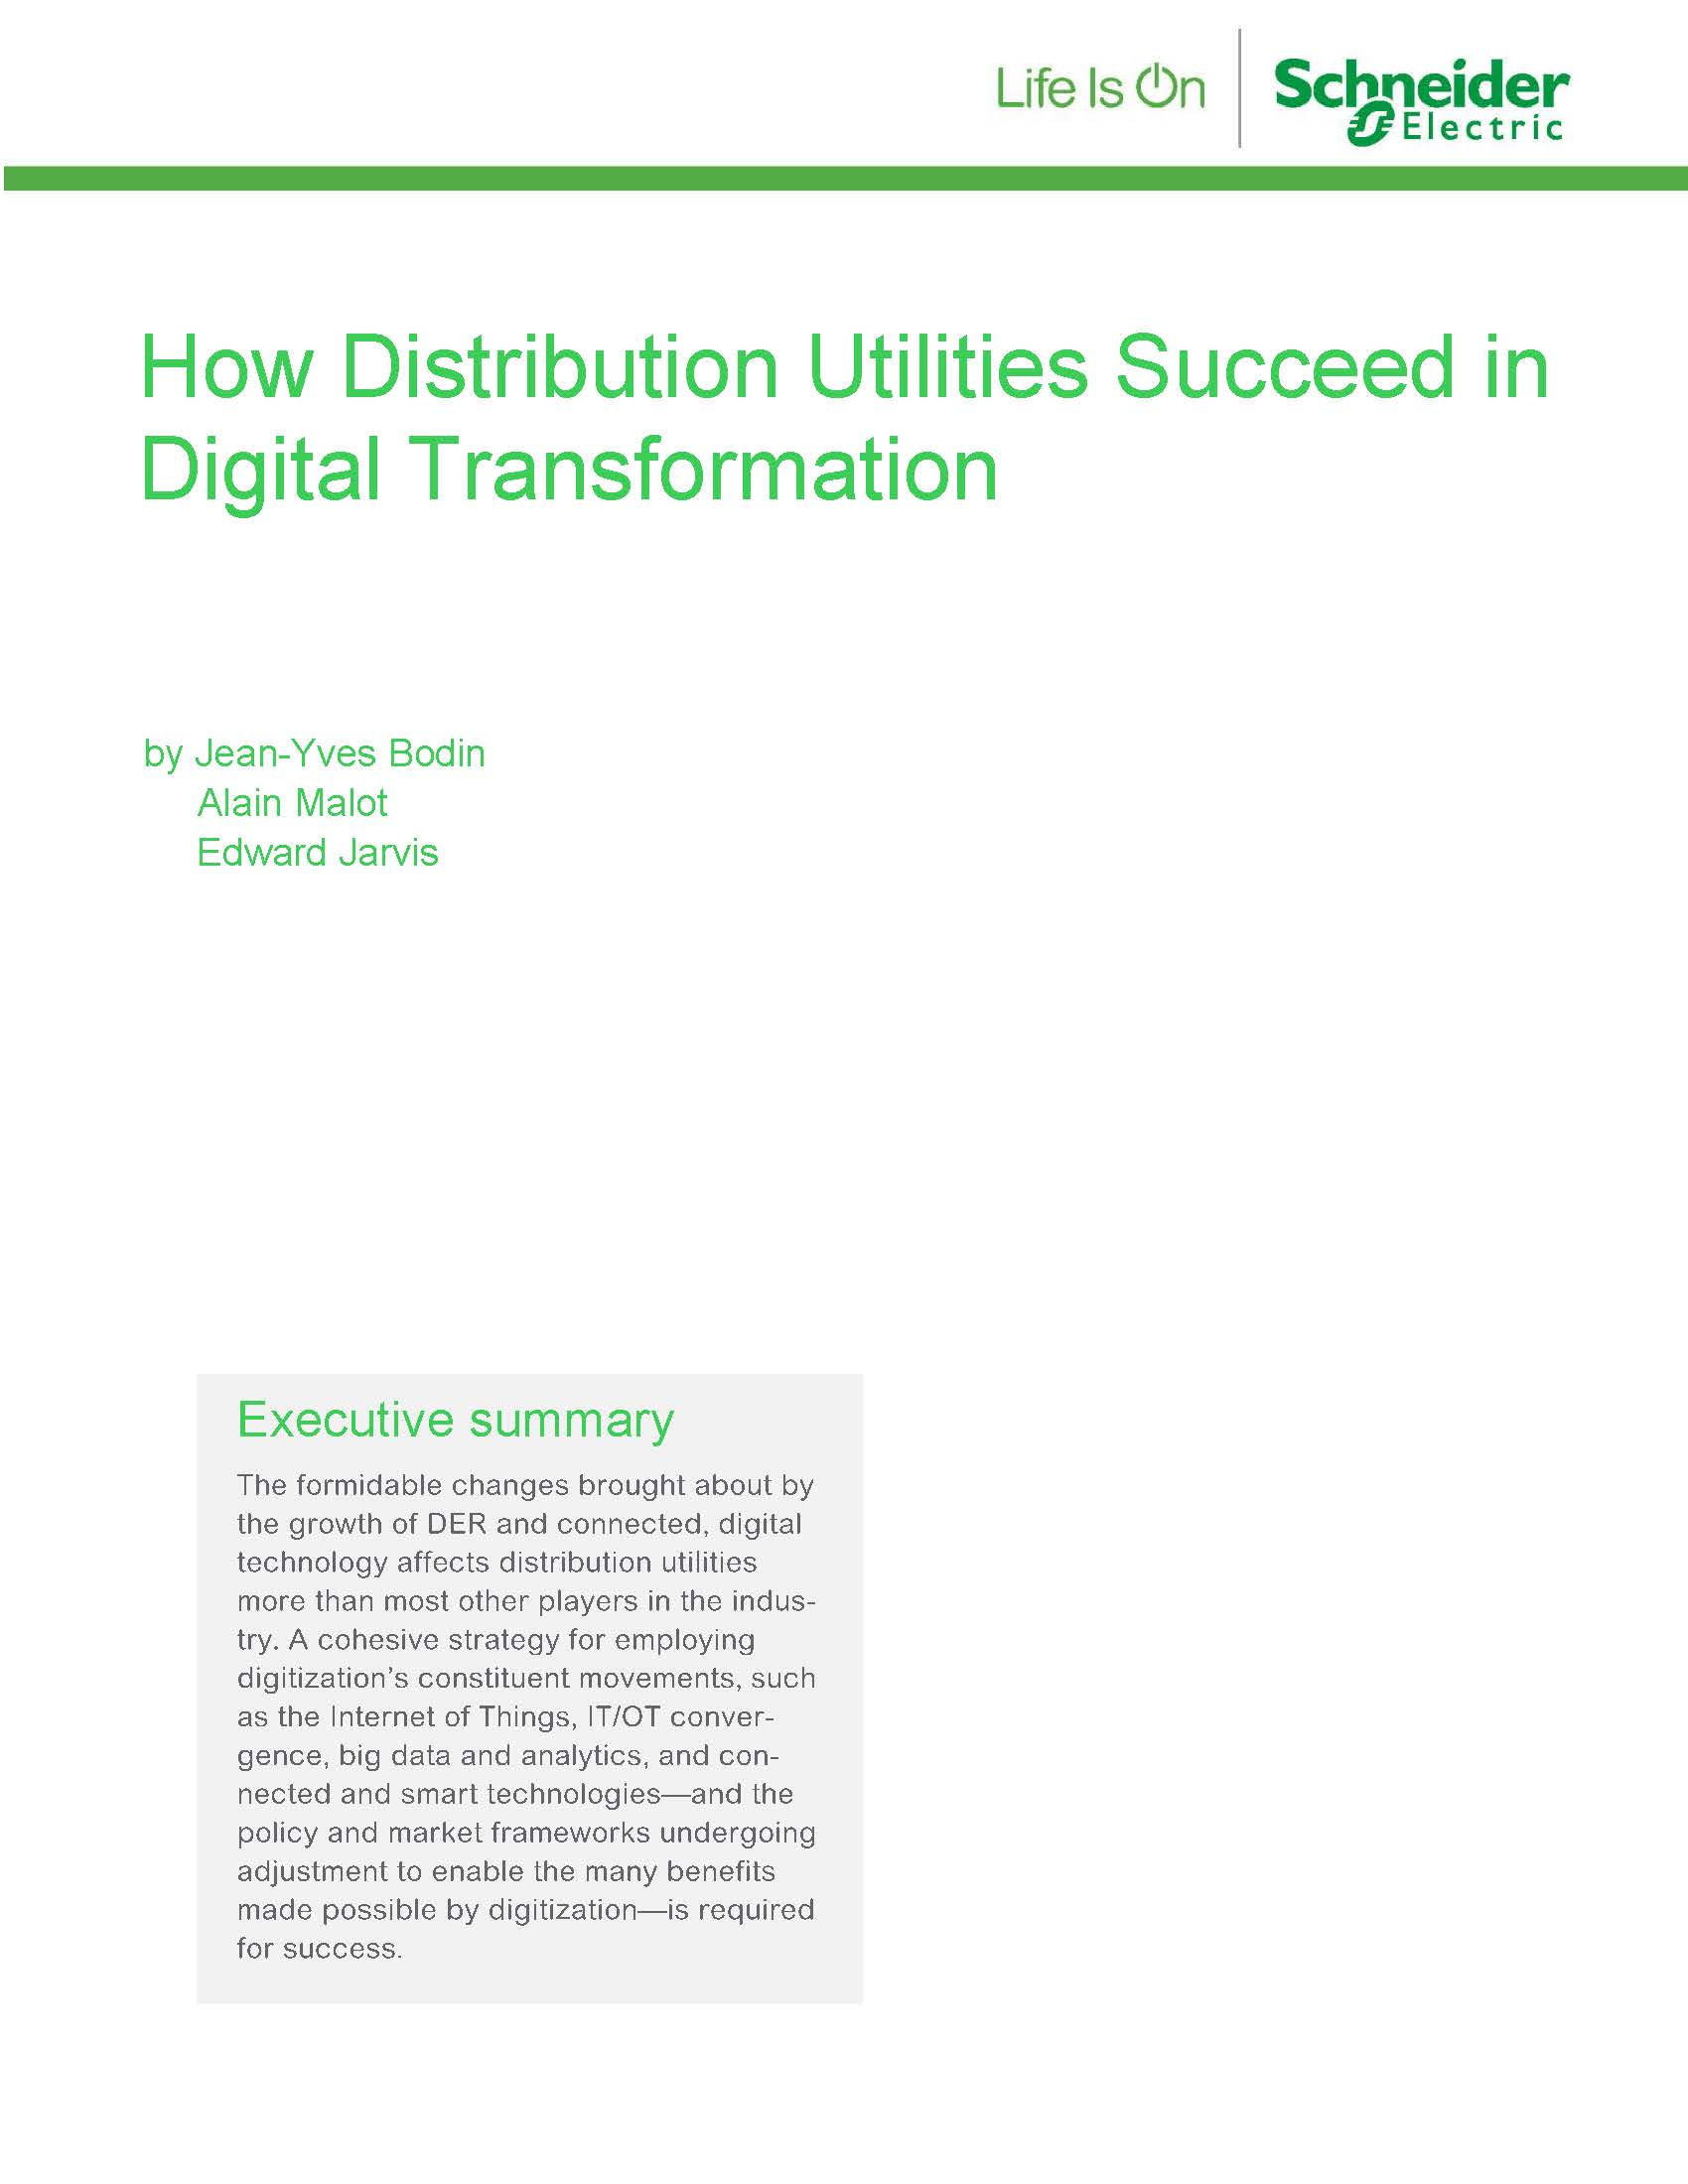 How Distribution Utilities Succeed in Digital Transformation